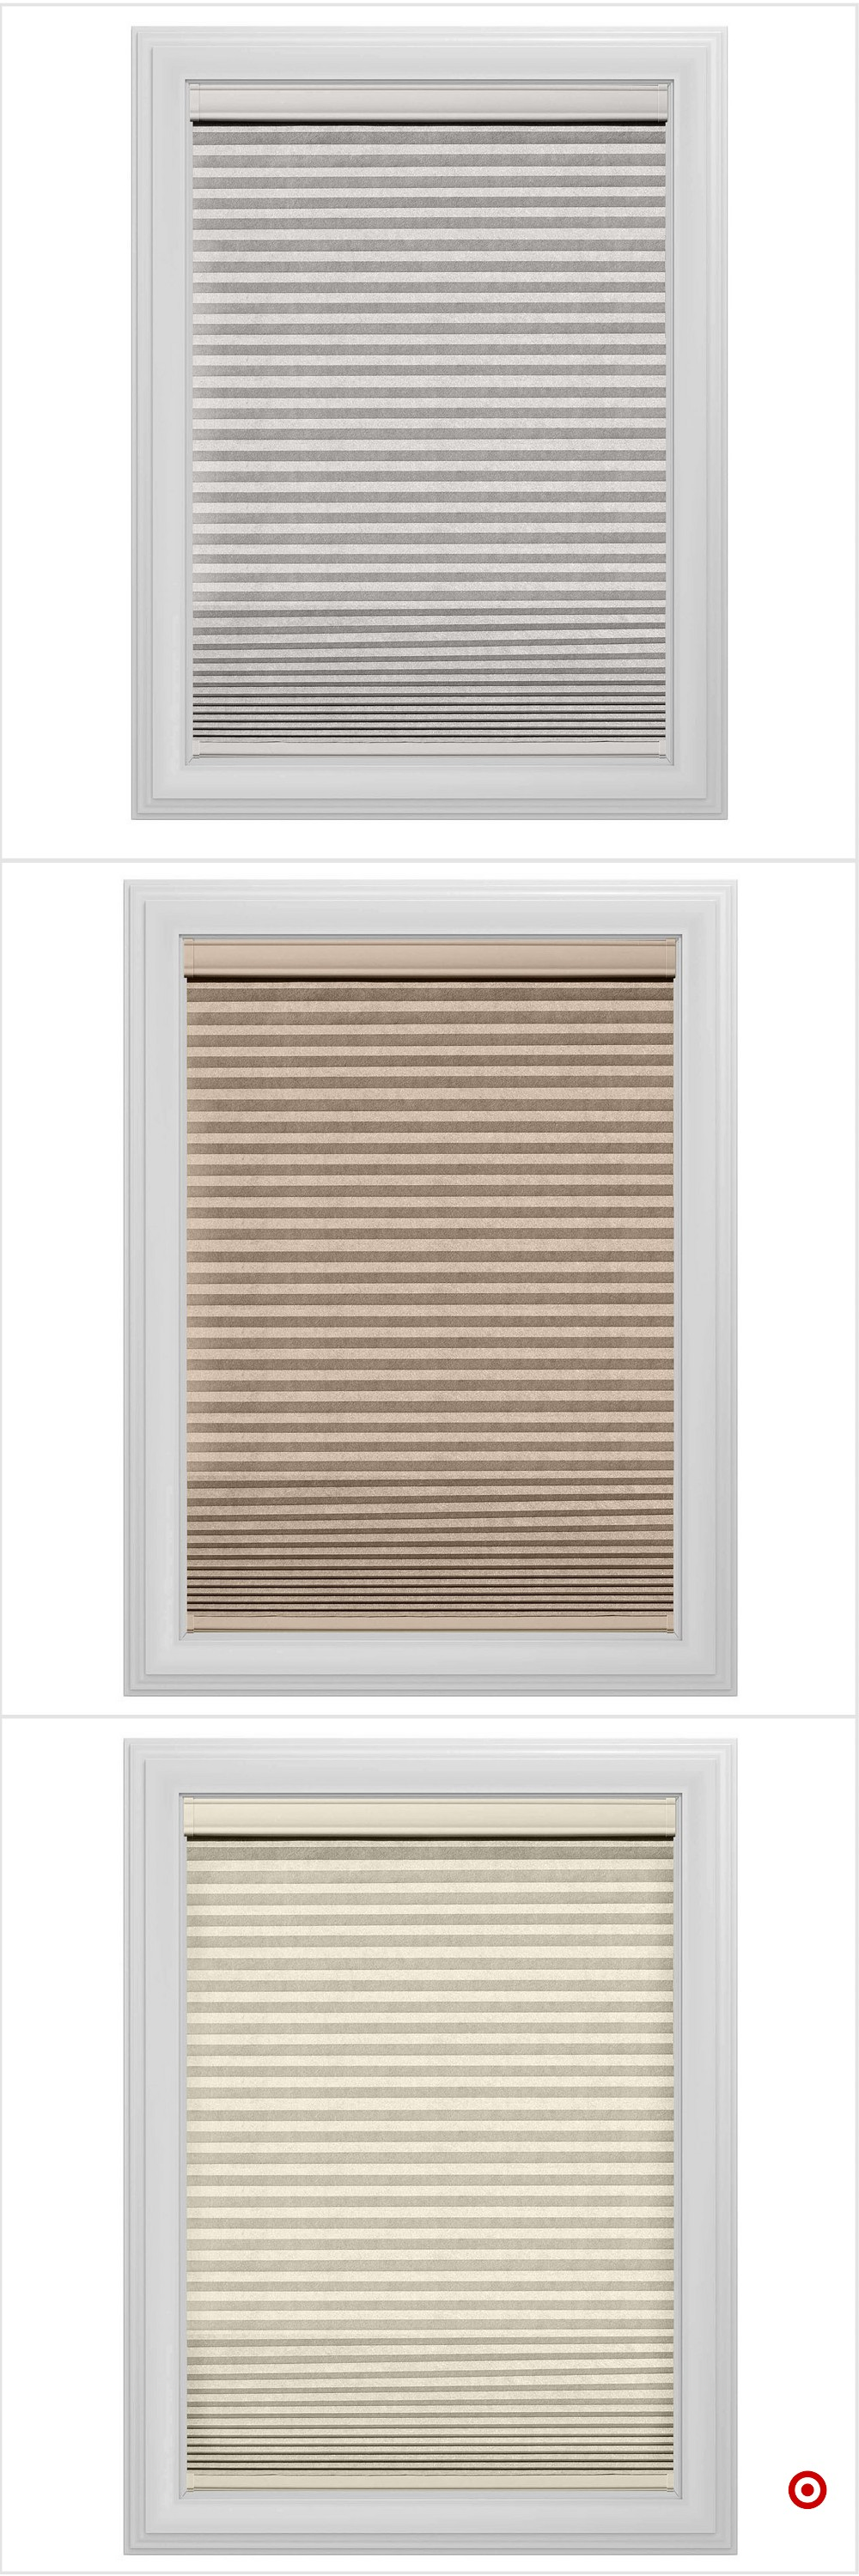 Beautiful Shop Target For Slotted Window Blind You Will Love At Great Low Prices.  Free Shipping